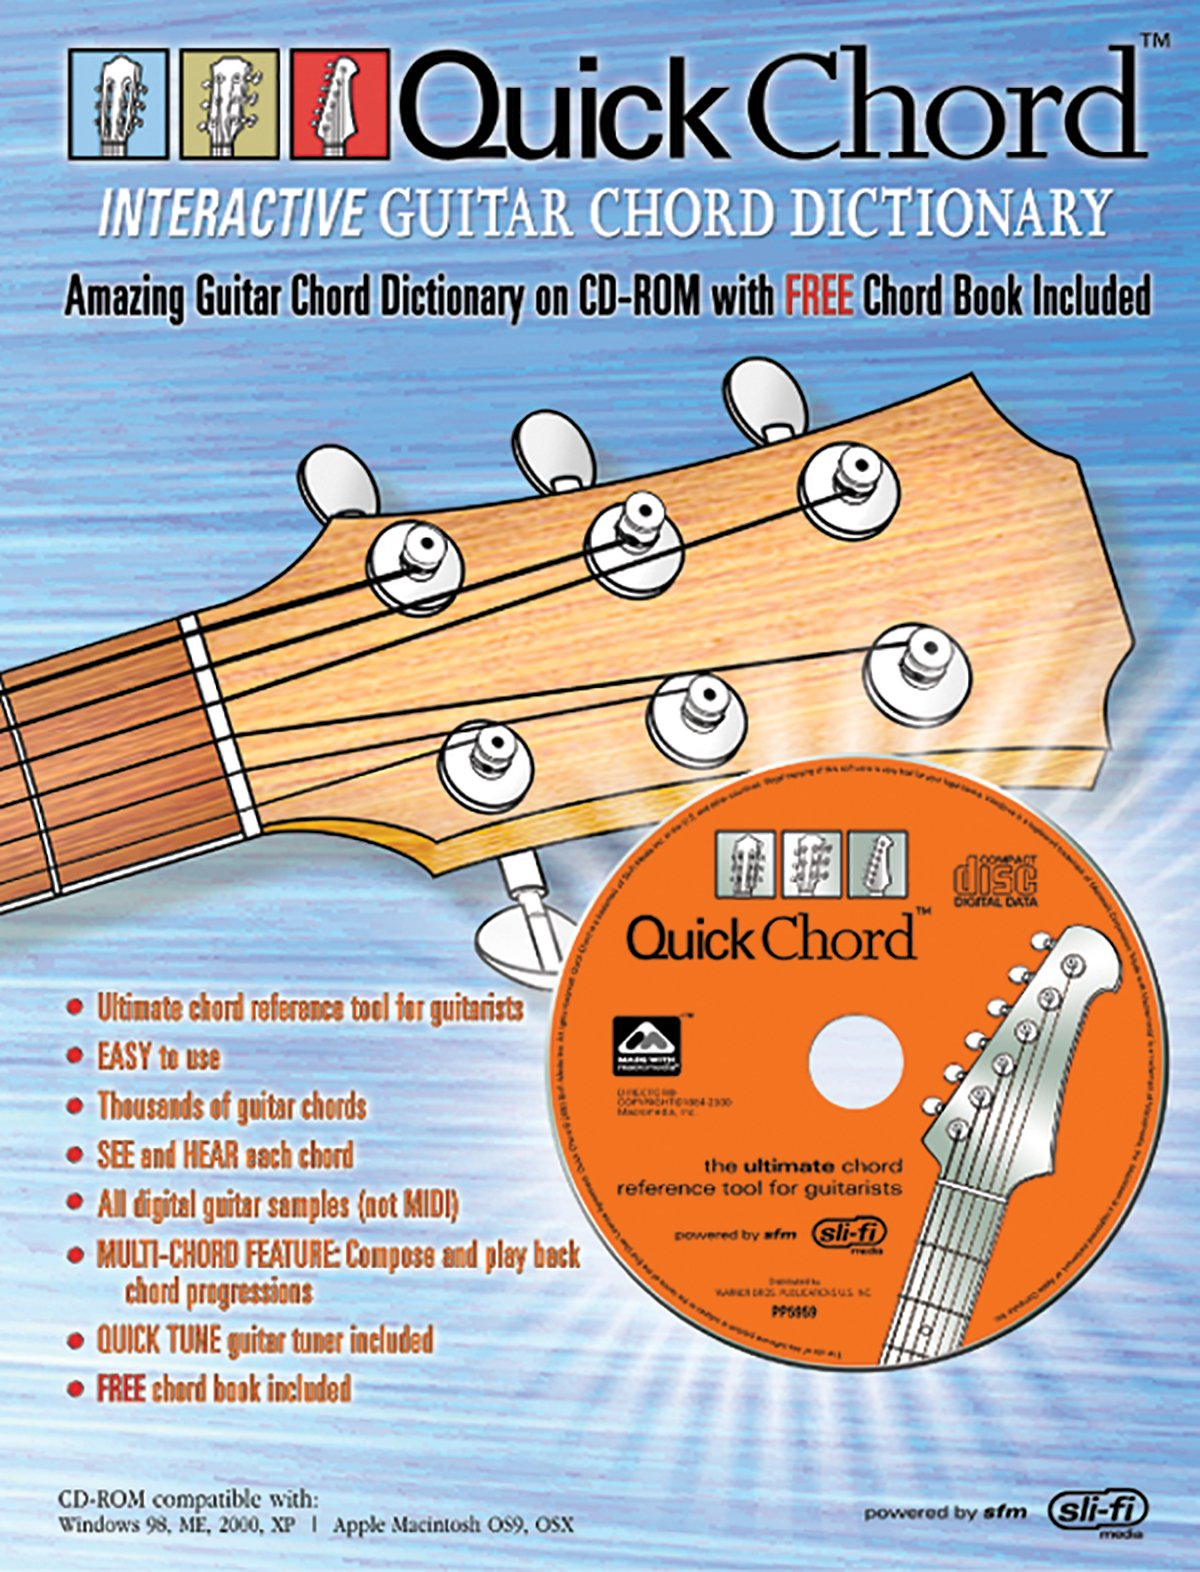 Quick Chord Interactive Guitar Chord Dictionary Free Chord Book